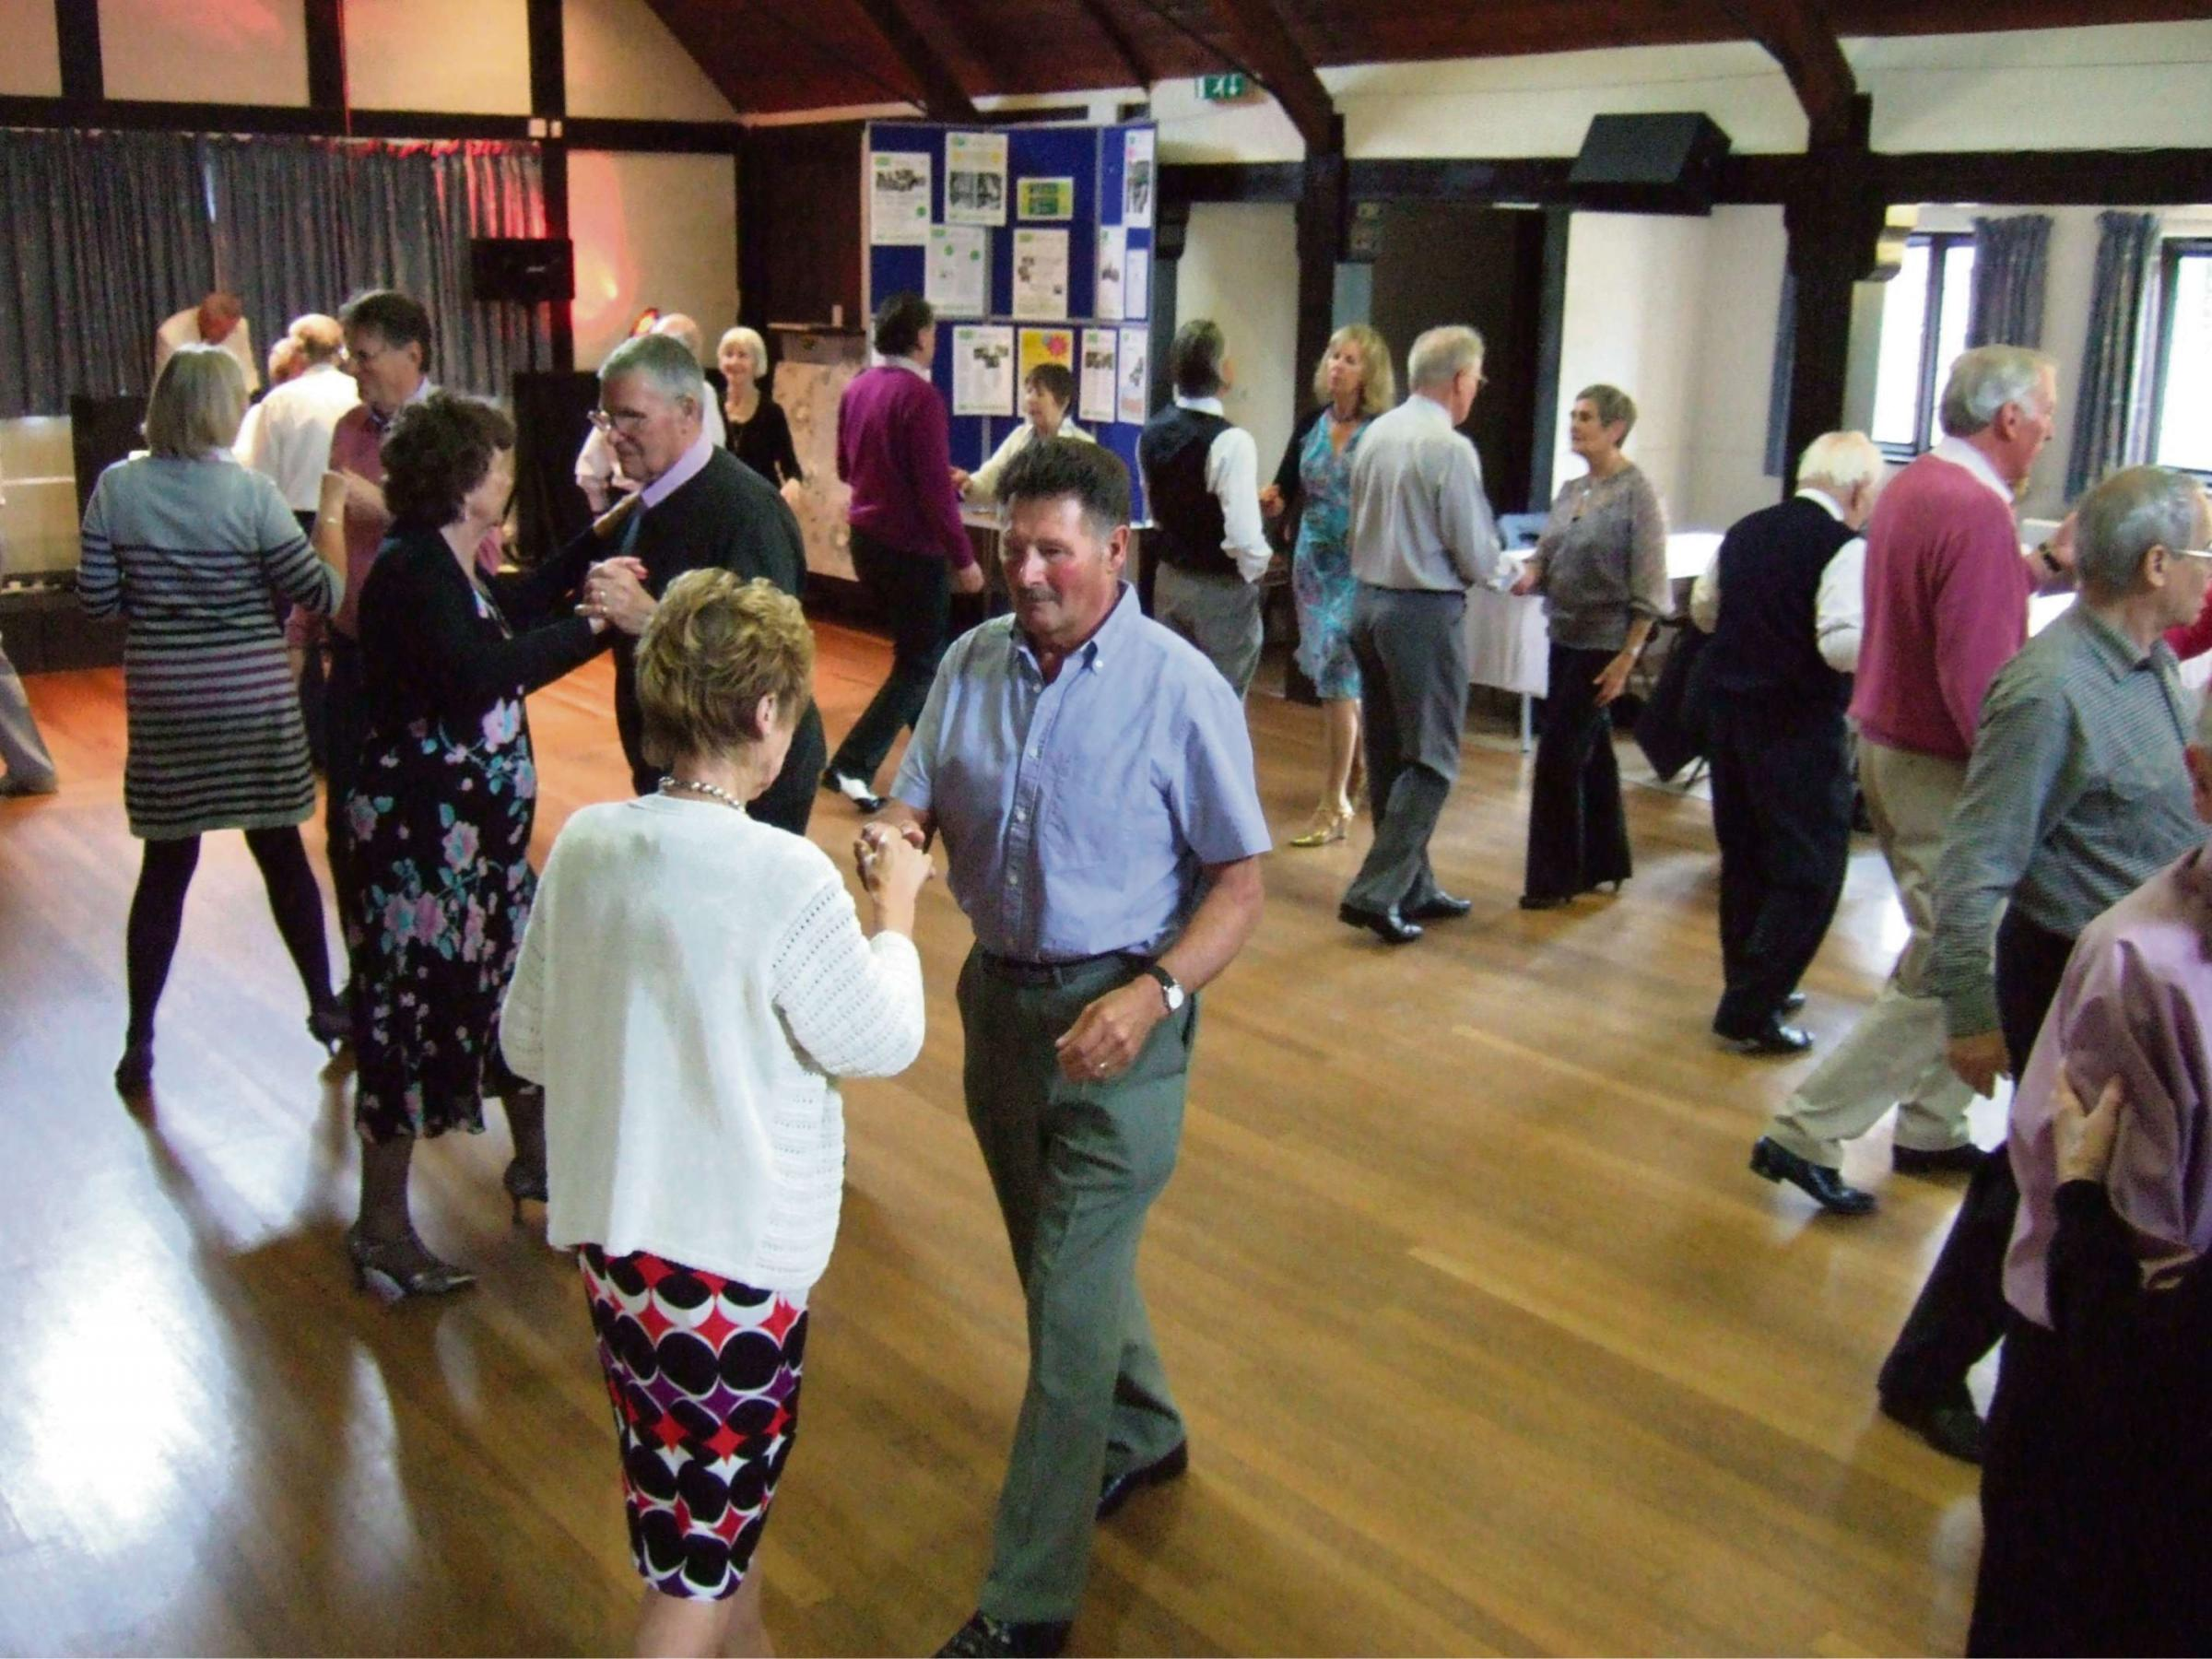 More than 50 people turned out for a Sunday afternoon tea dance as part of the Archive Project.